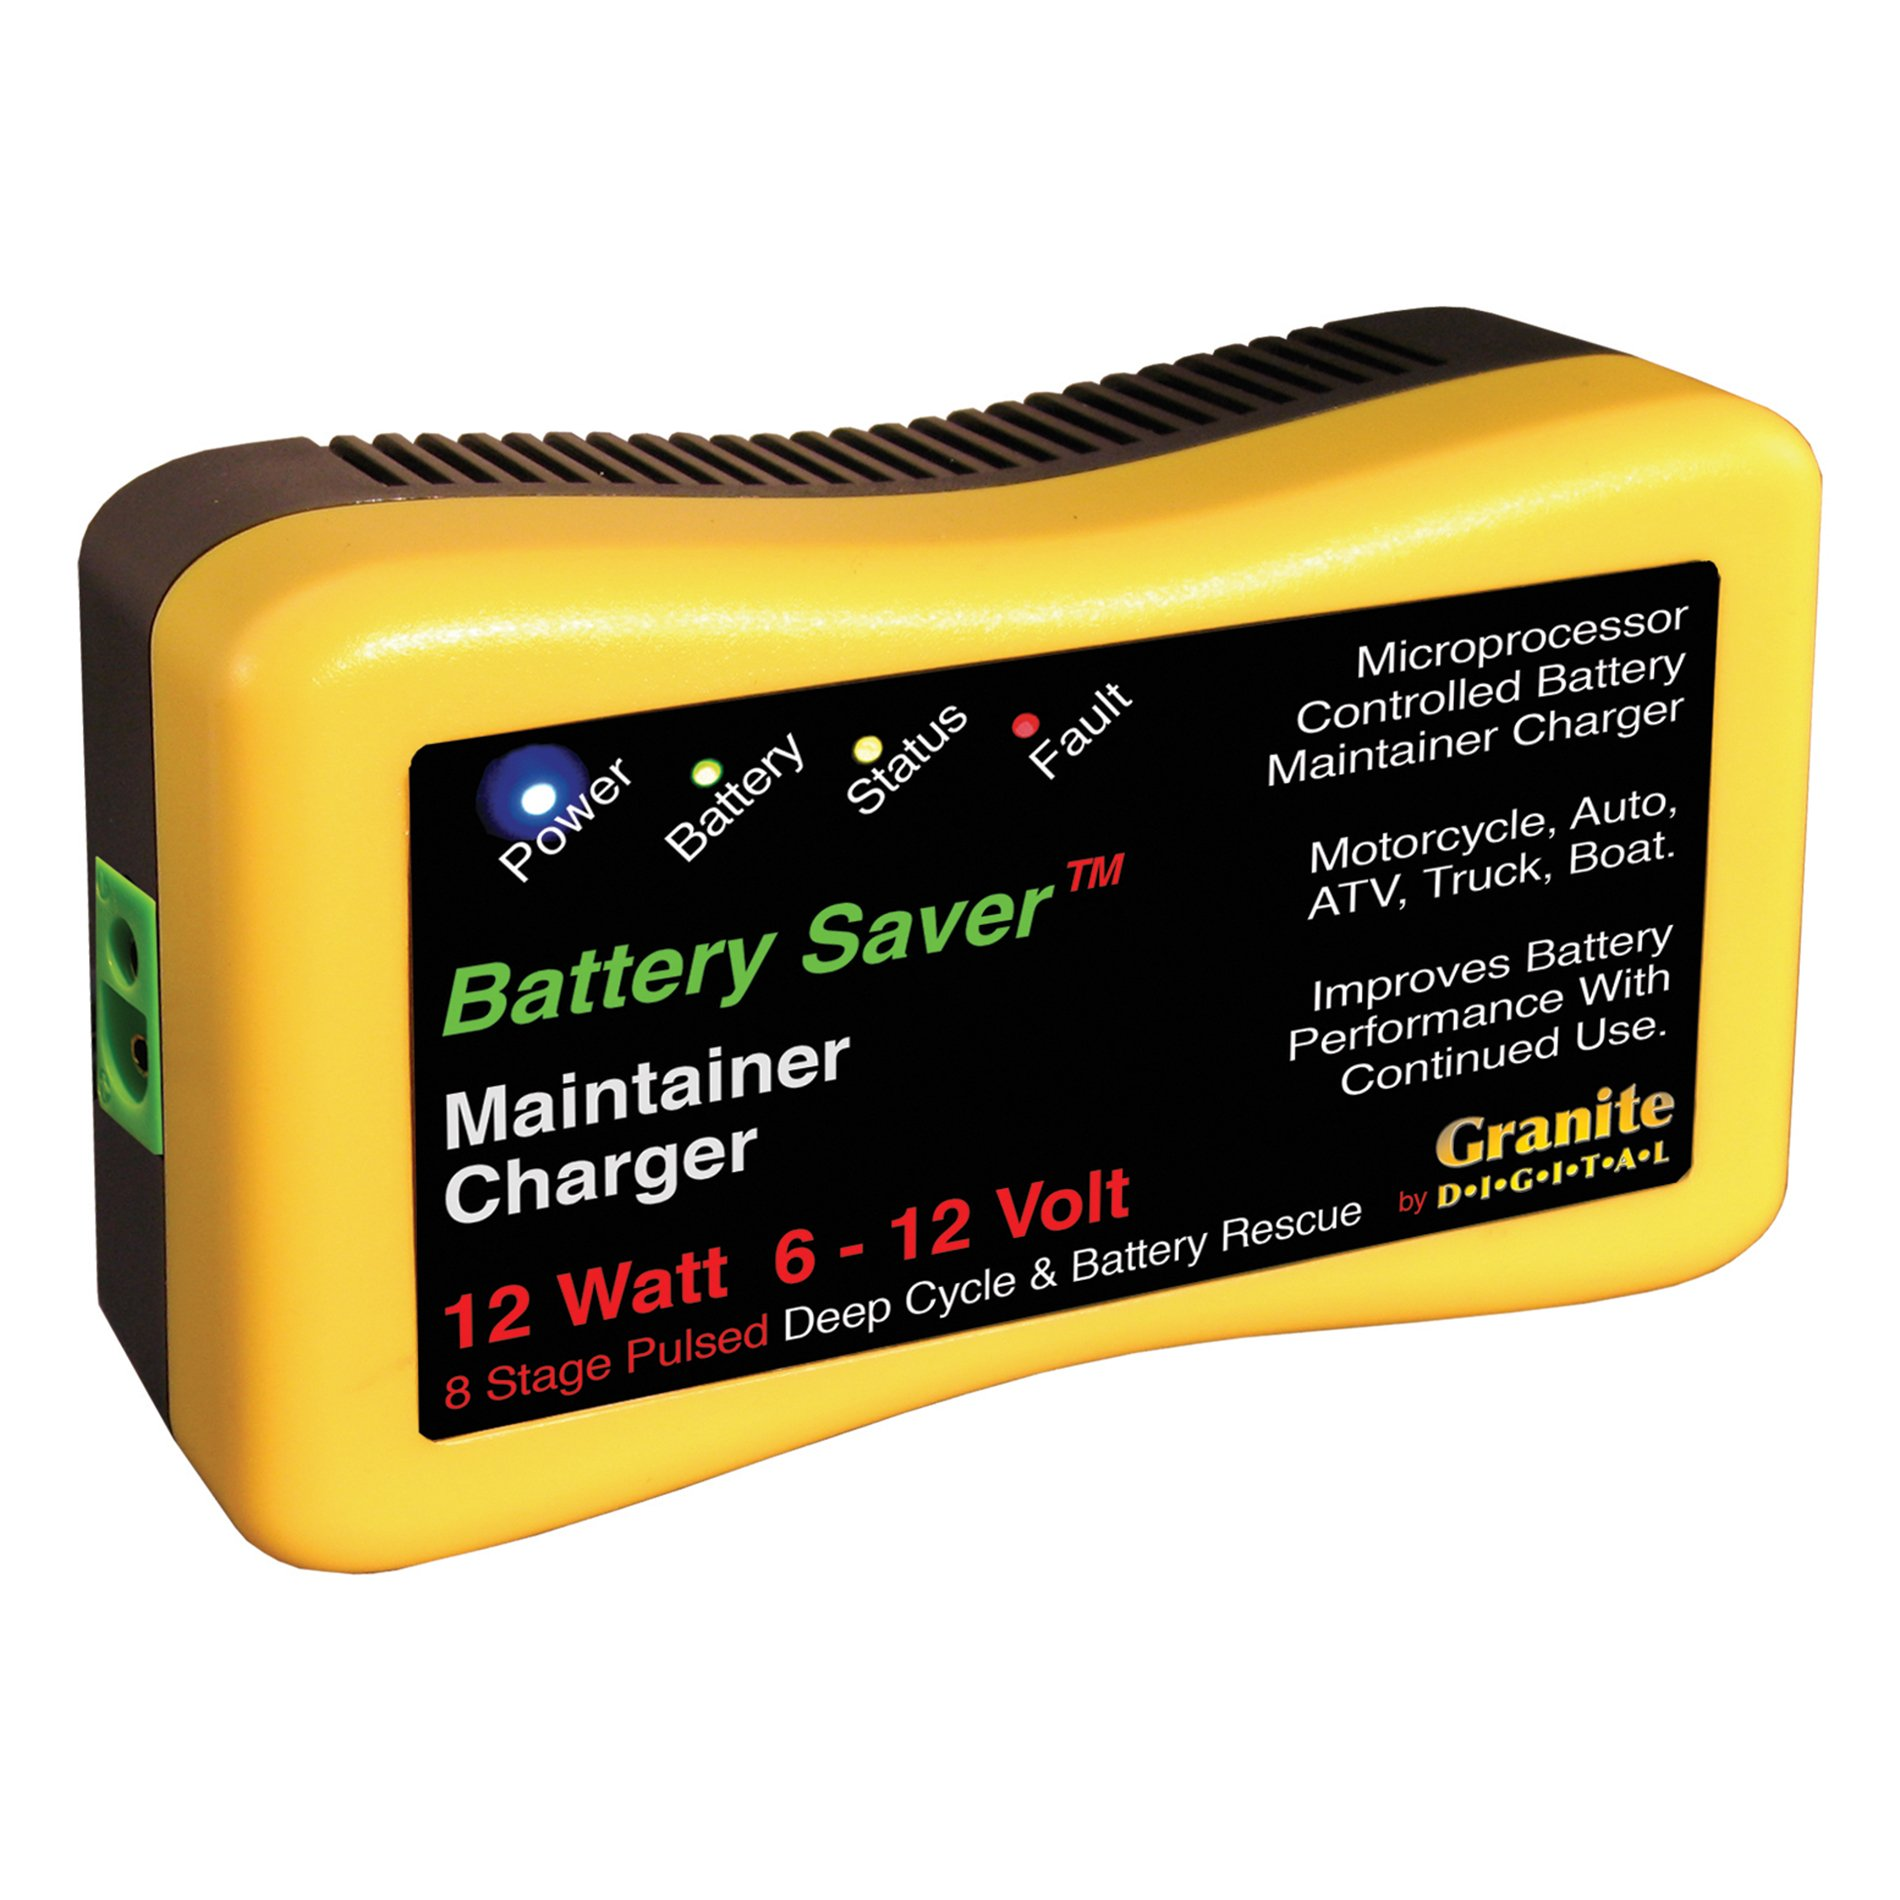 Battery Saver 6259 12W Pulse Battery Maintainer/Charger with Battery Rescue and 20' Extension Cables by Battery Saver (Image #7)